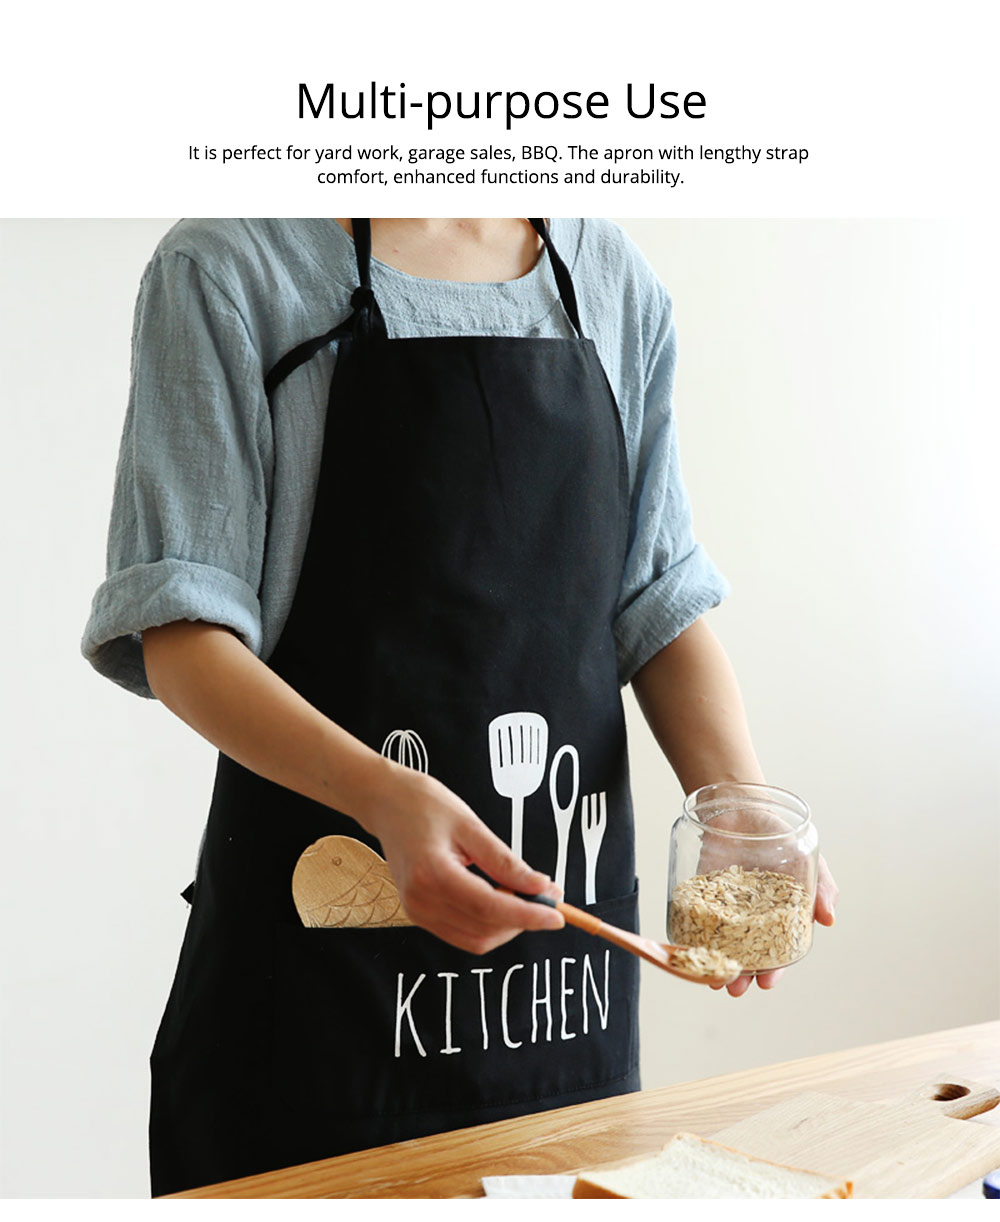 Creative Cotton Cutlery Pattern Apron with Adjustable 3 Pockets Design for Professional for BBQ, Baking, Cooking for Men & Women 2